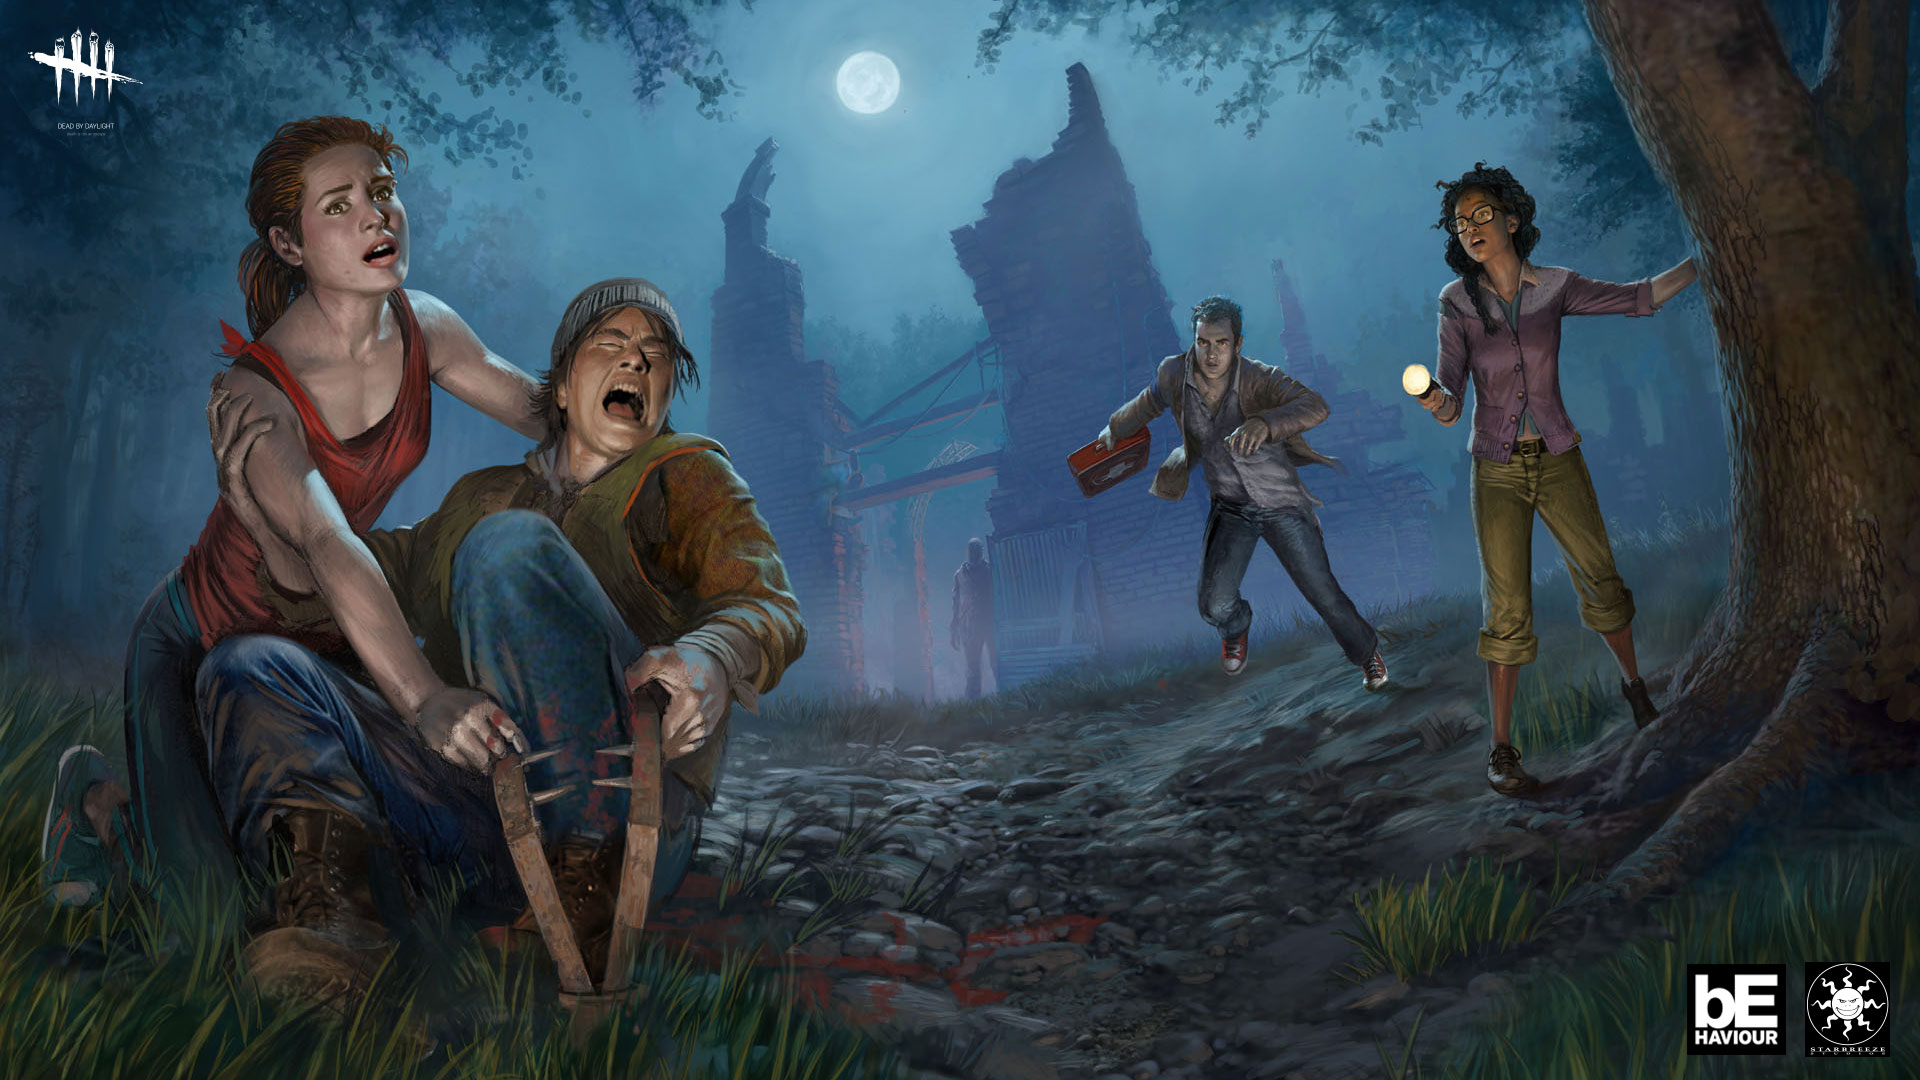 Dead By Daylight Hd Wallpapers Backgrounds Wallpaper 1920x1080